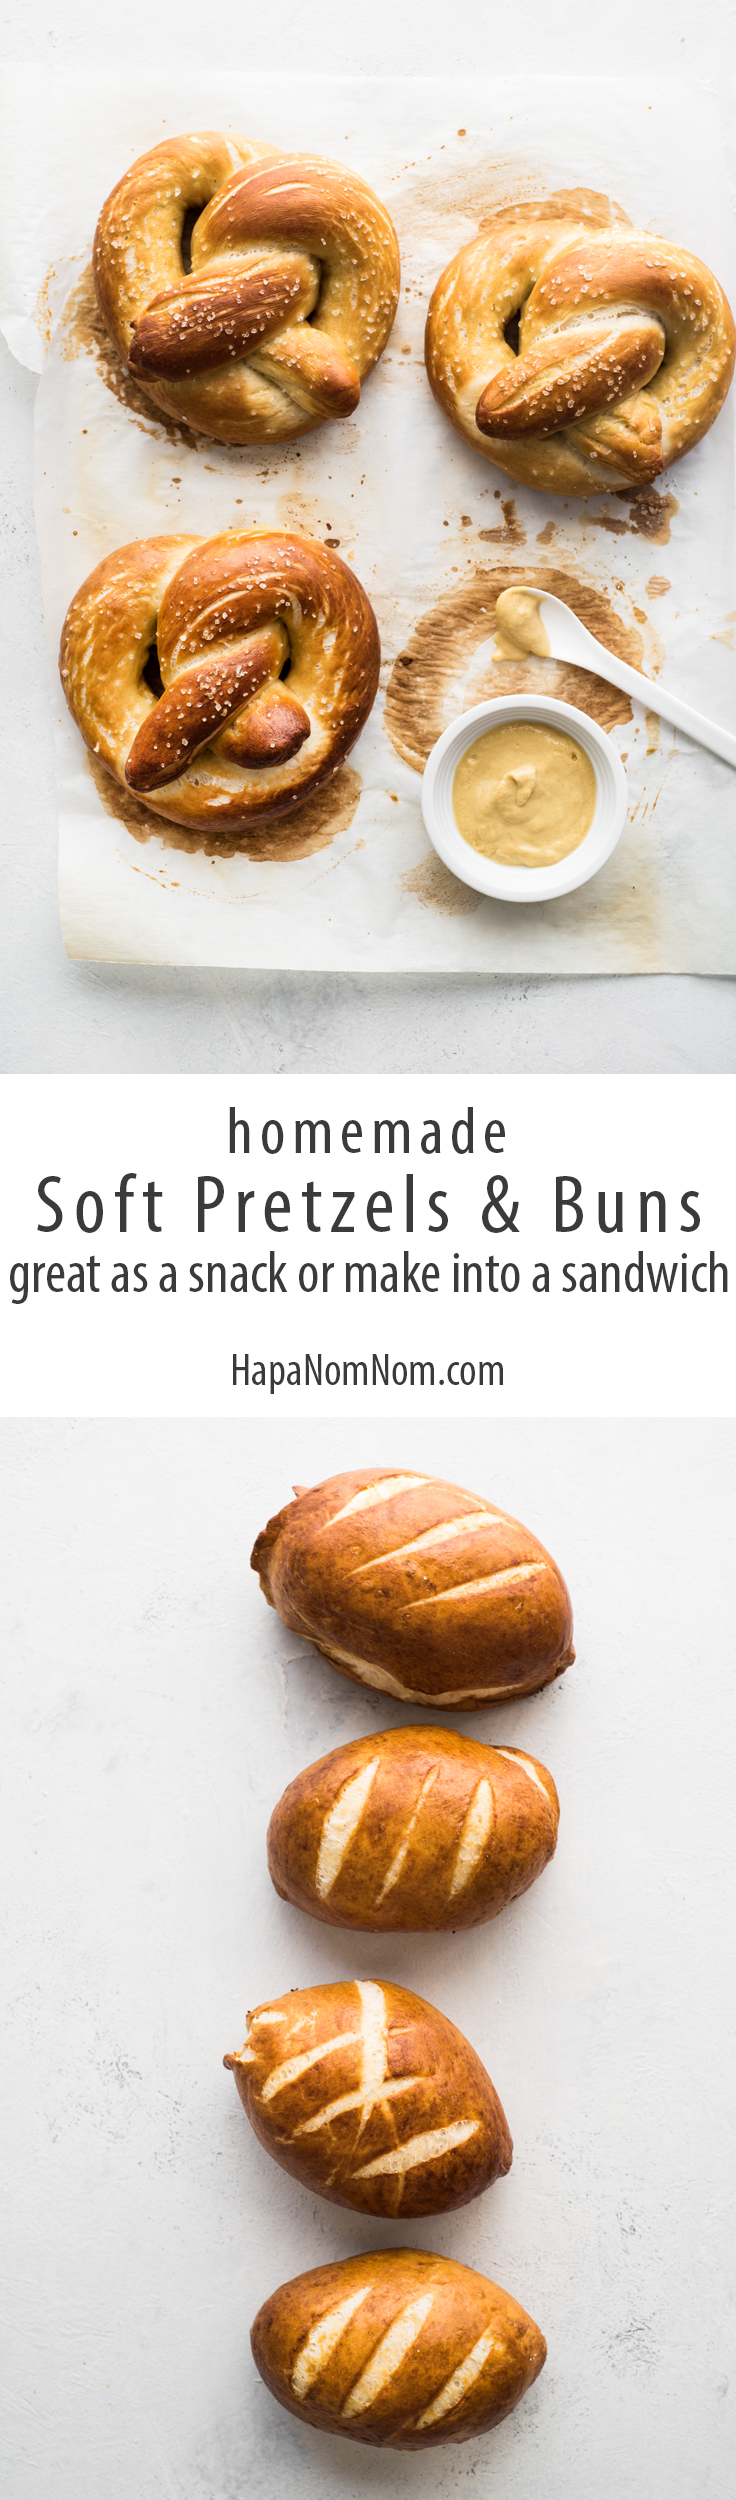 Homemade Soft Pretzels - A perfect snack or makes a great sandwich!